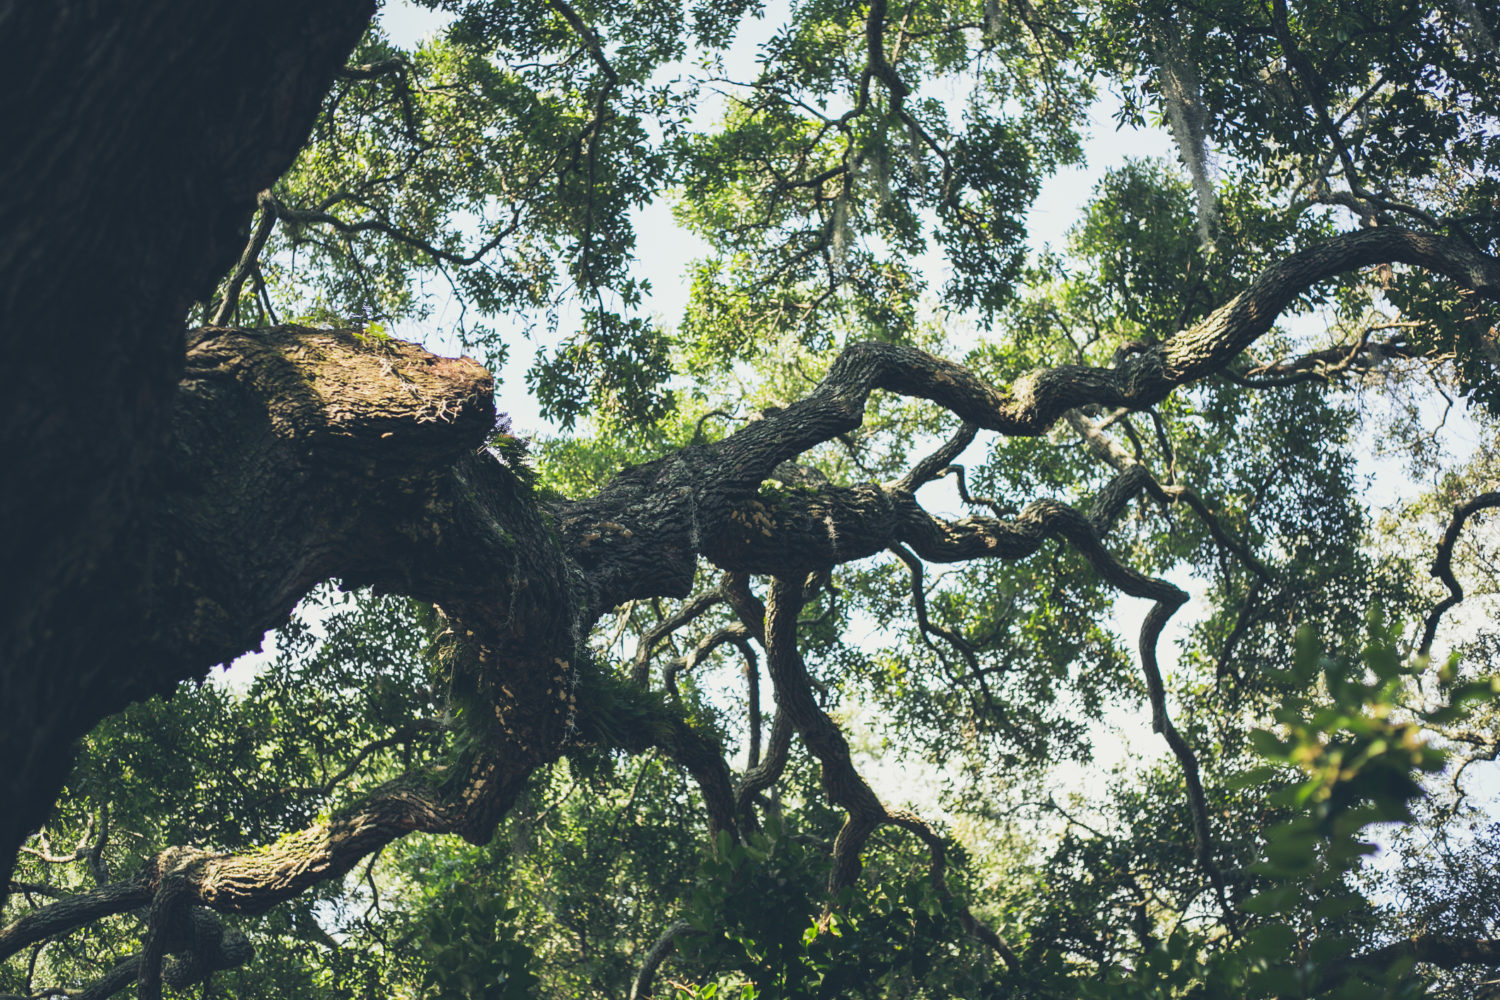 Twisted Live Oak Branches Covered In Spanish Moss